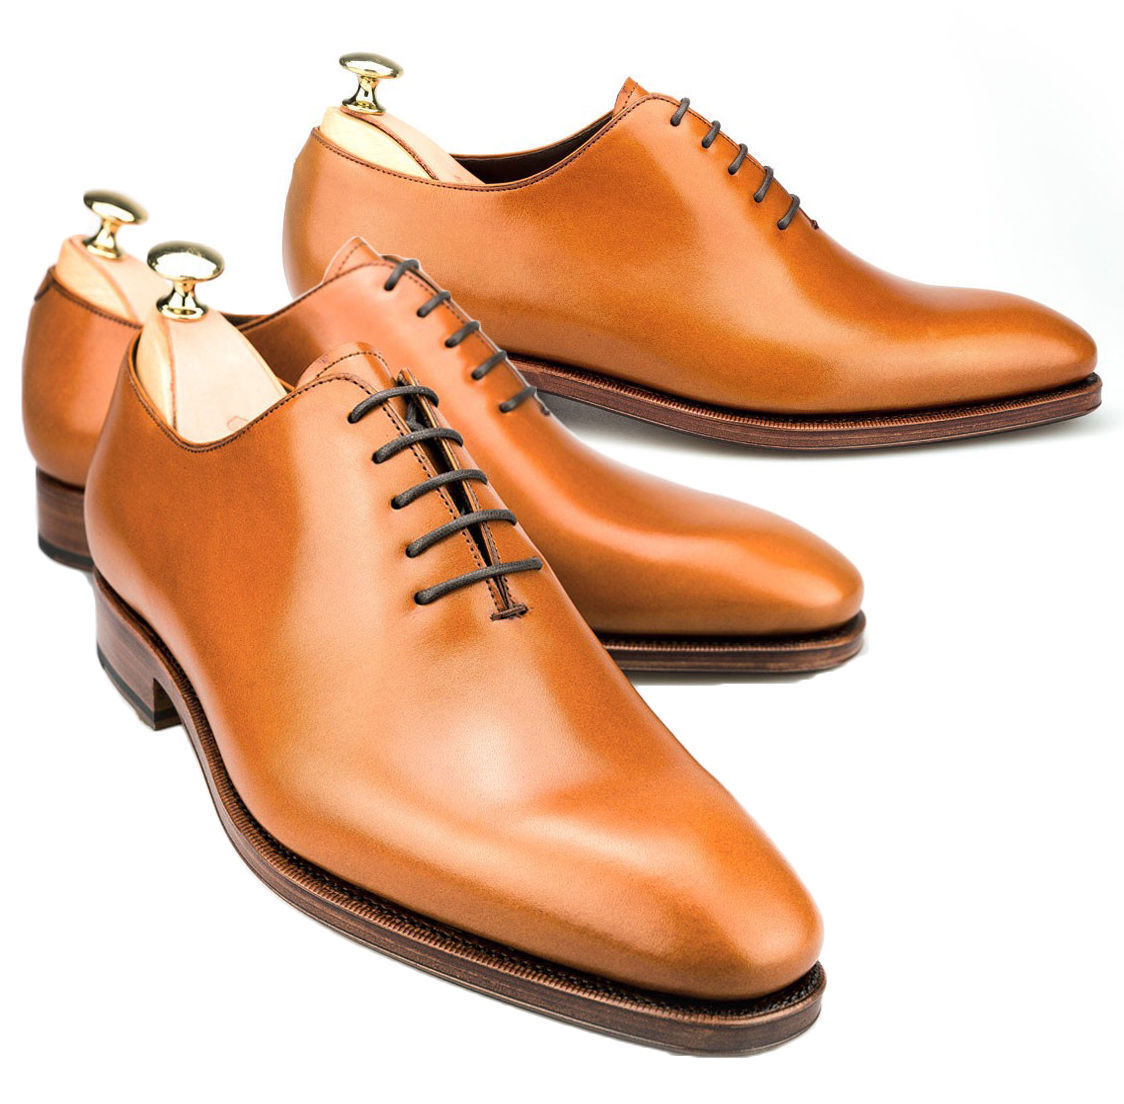 Mens Handmade Oxford Whole-Cut schuhe Real Leather Stiefel Mens Dress Dress Dress Formal schuhe  am besten kaufen